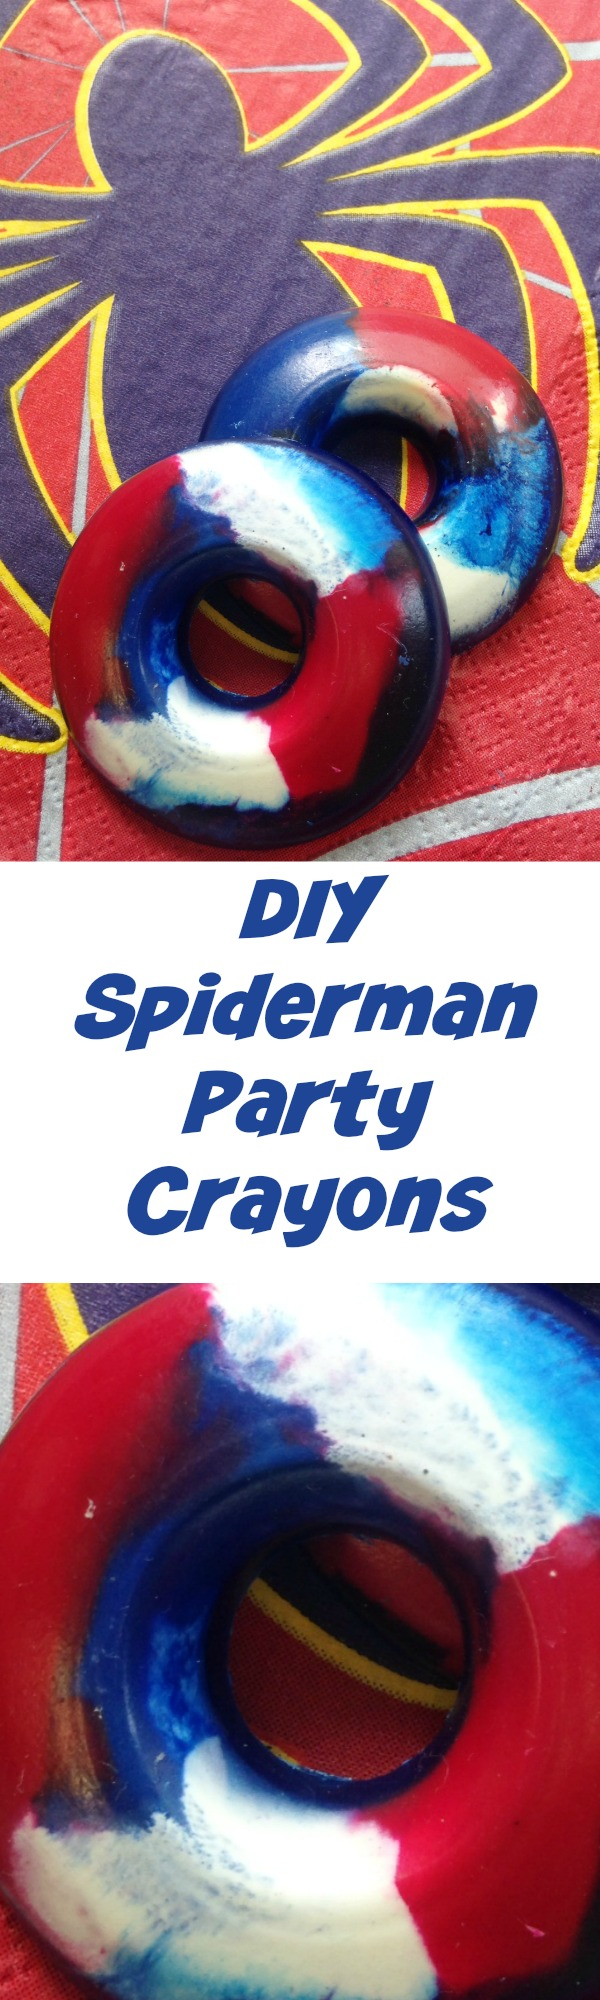 DIY Spiderman Party Crayons How To Make